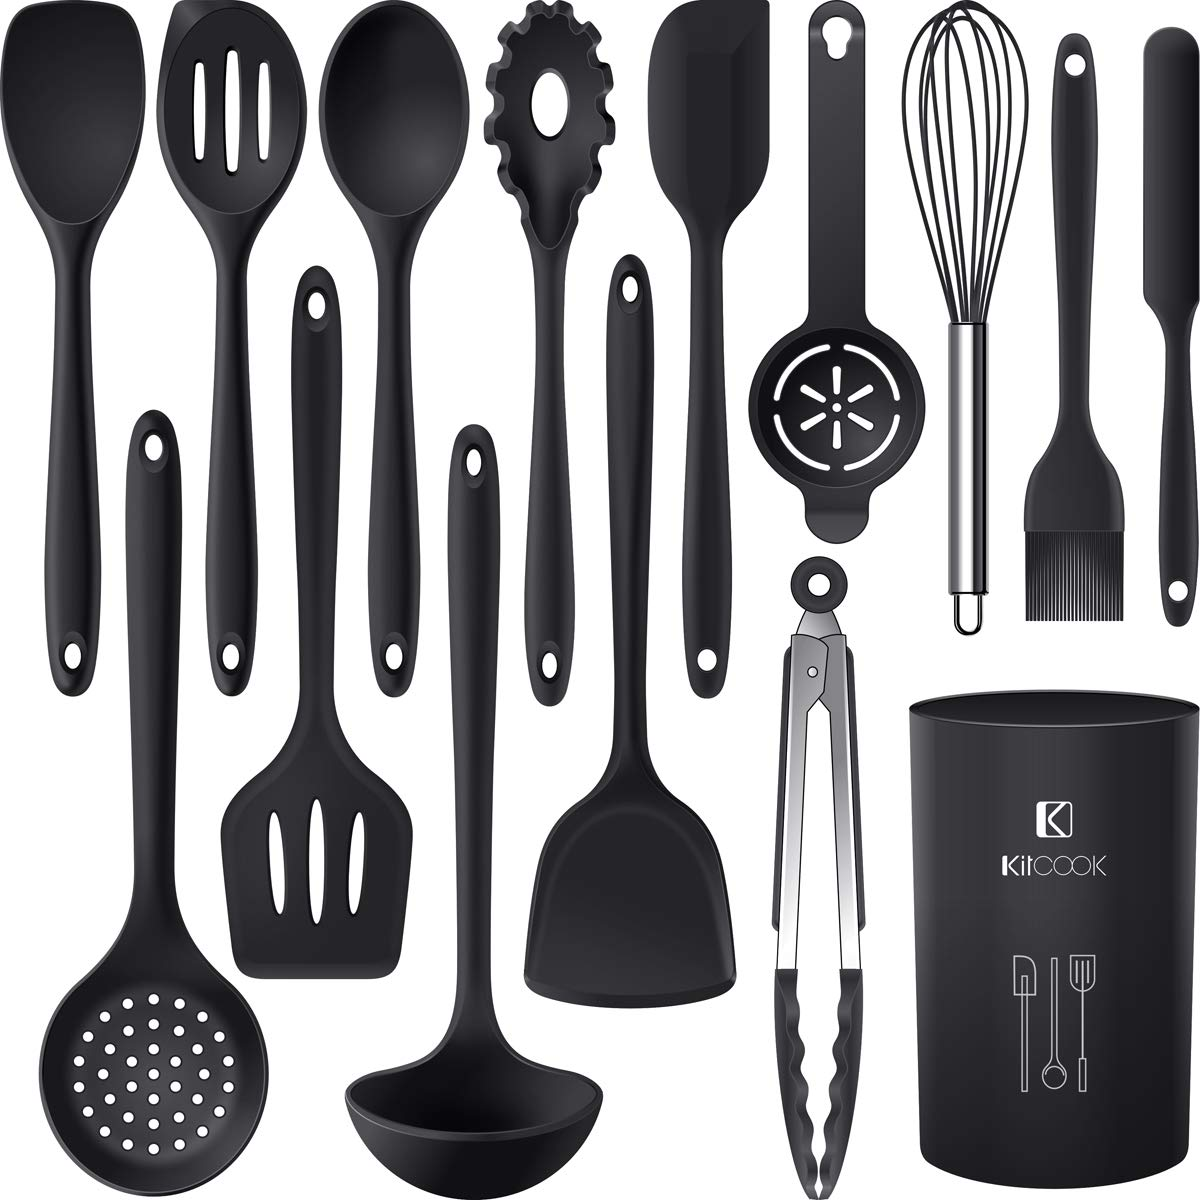 Skimmers Includes Spoon Made of Silicone and Stainless Steel Pasta Server Slotted Turner Soup Ladle HOMQUEN Kitchen Utensil Set 6 Piece Cooking Utensils for Non-Stick Cookware Solid Turner